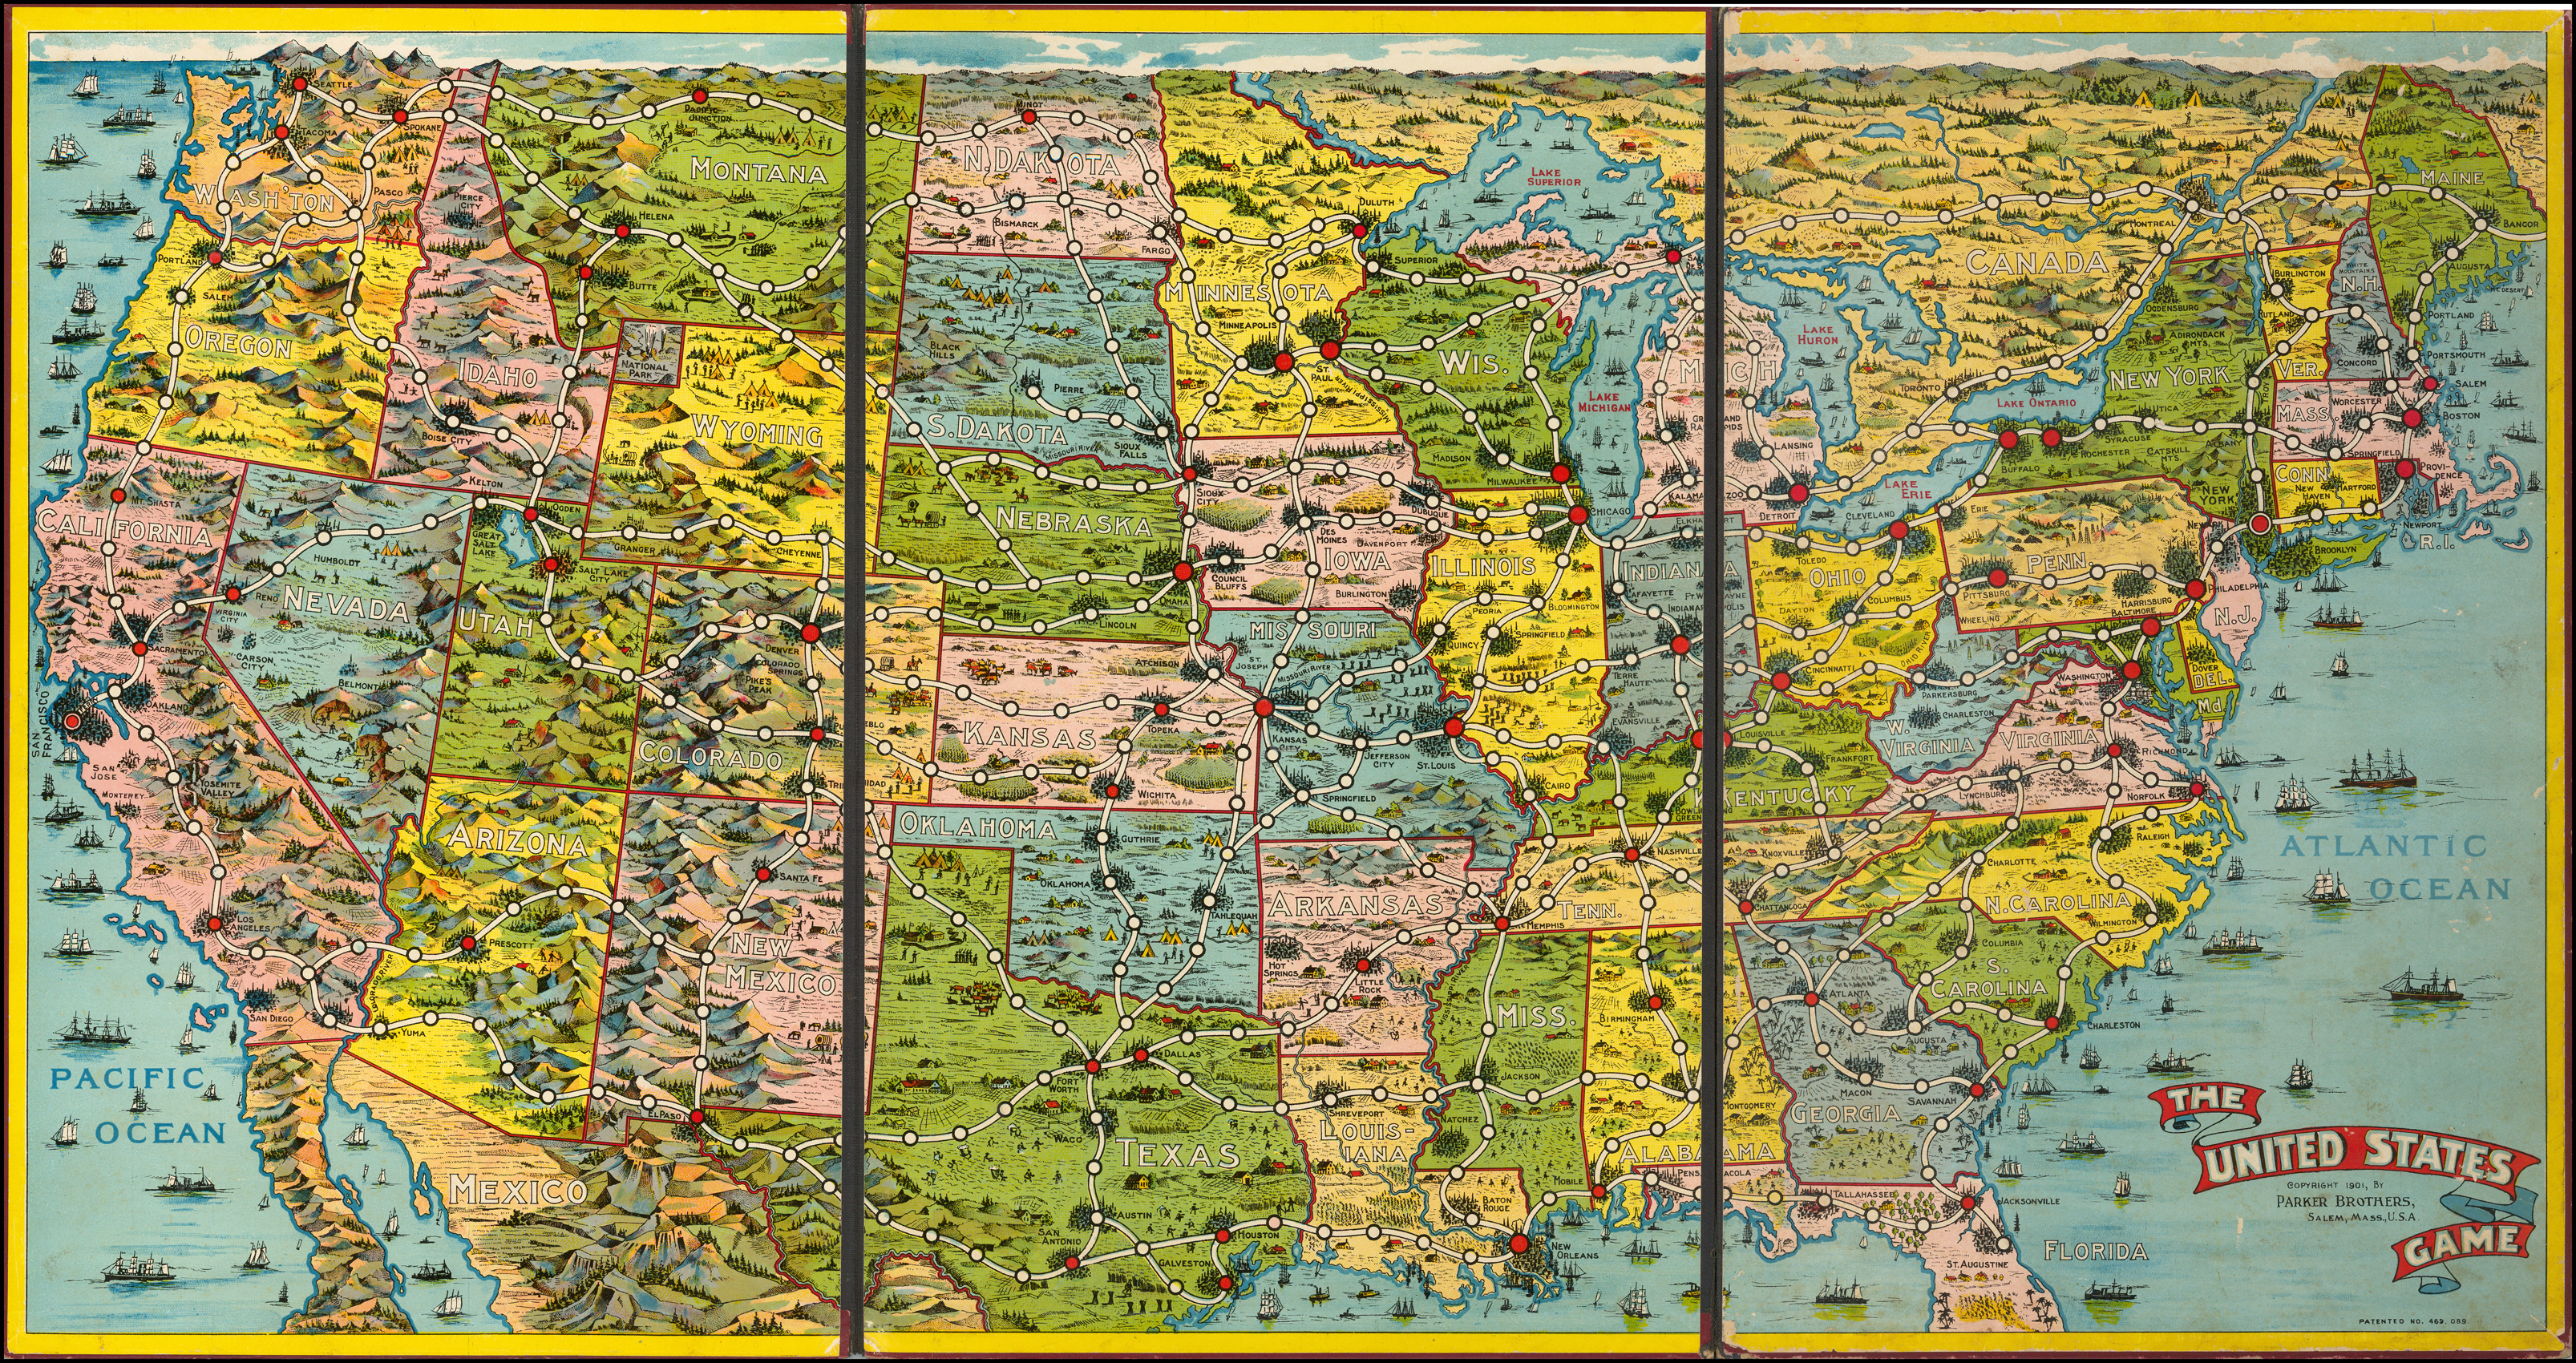 Game Board Map] The United States Game - Barry Lawrence ... on 50 states matching game, blank united states map game, map united states government, usa map game, world map game, us states map game, map of states for us teachers, space game, united states and capitals game,